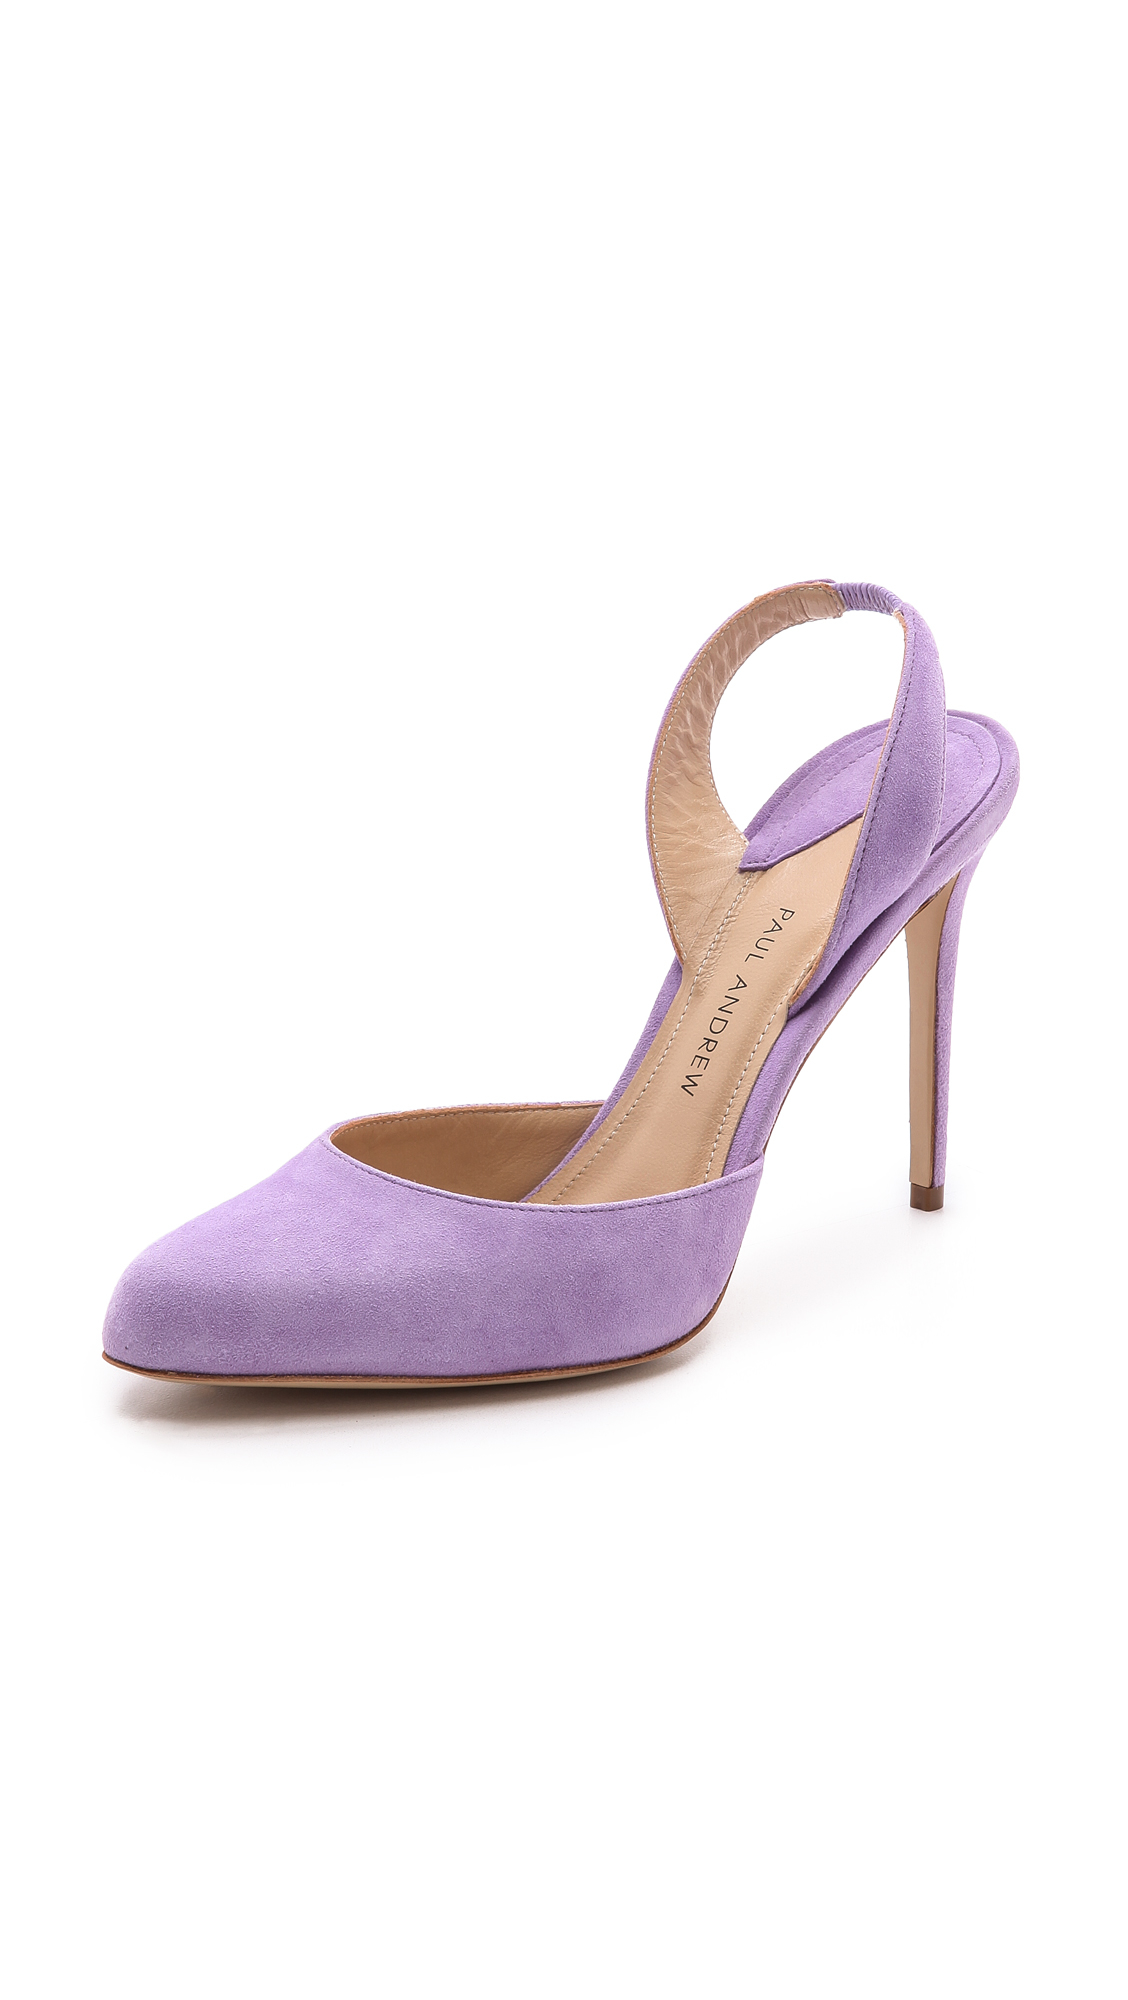 Lyst - Paul andrew Solace Slingback Heels - Lilac in Purple